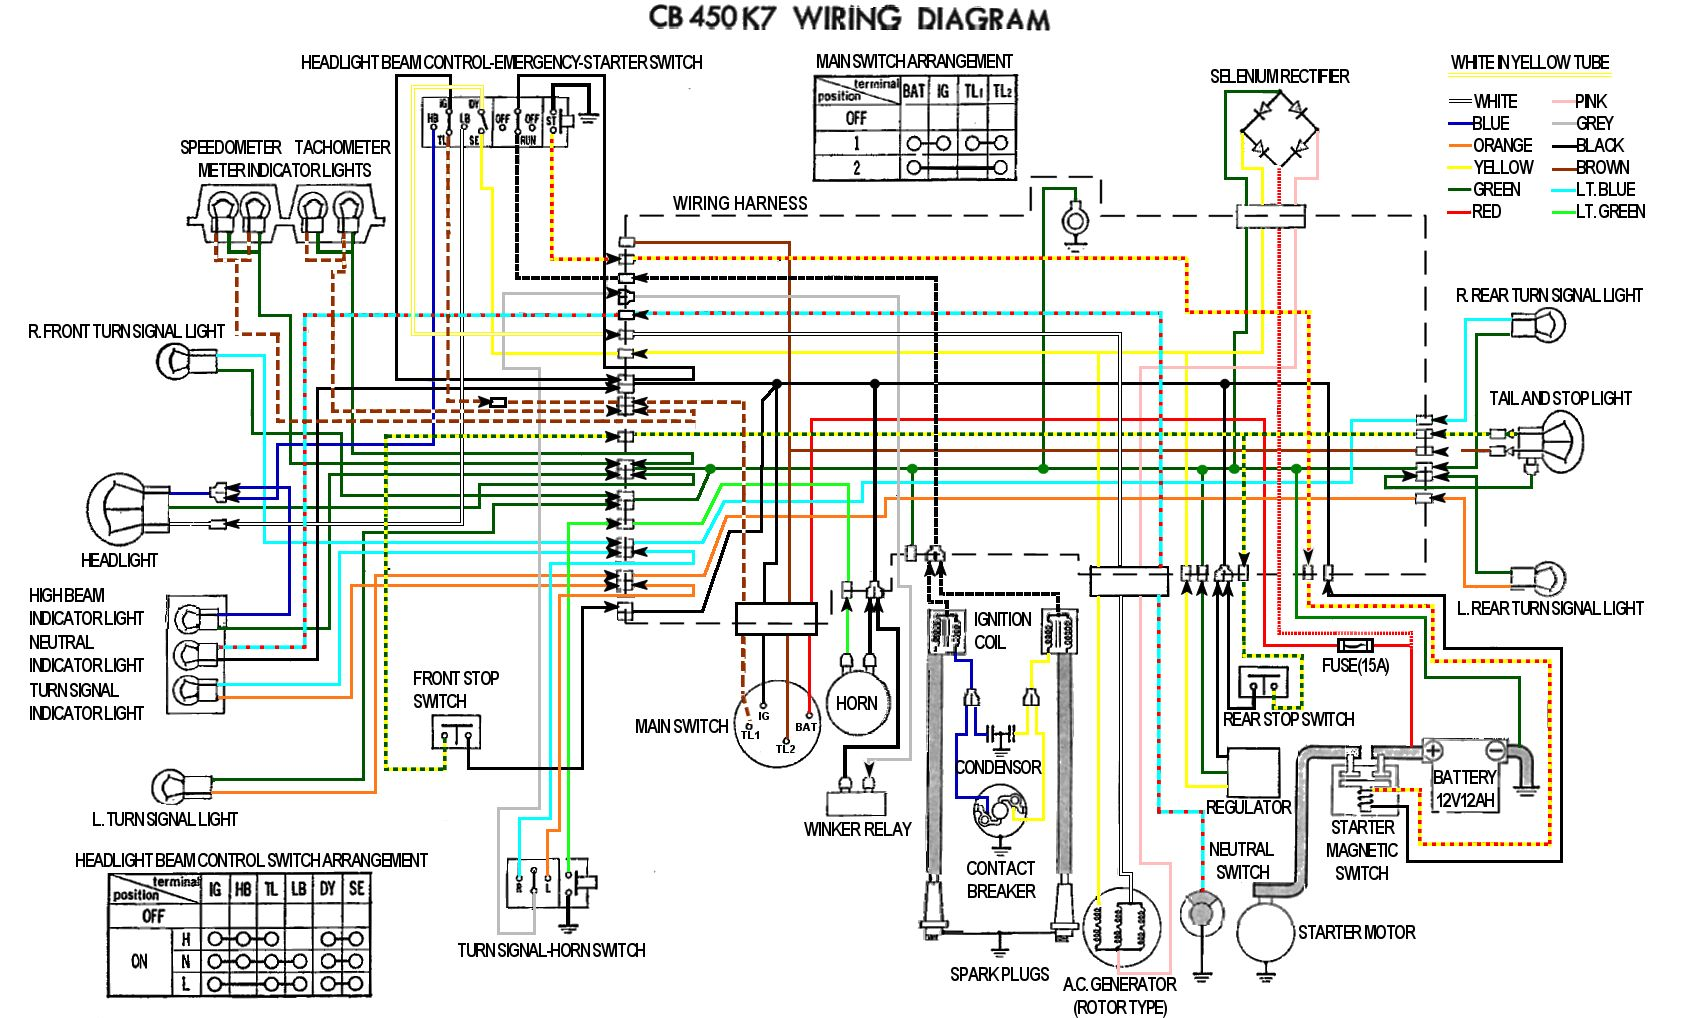 color wiring diagrams color wiring diagrams